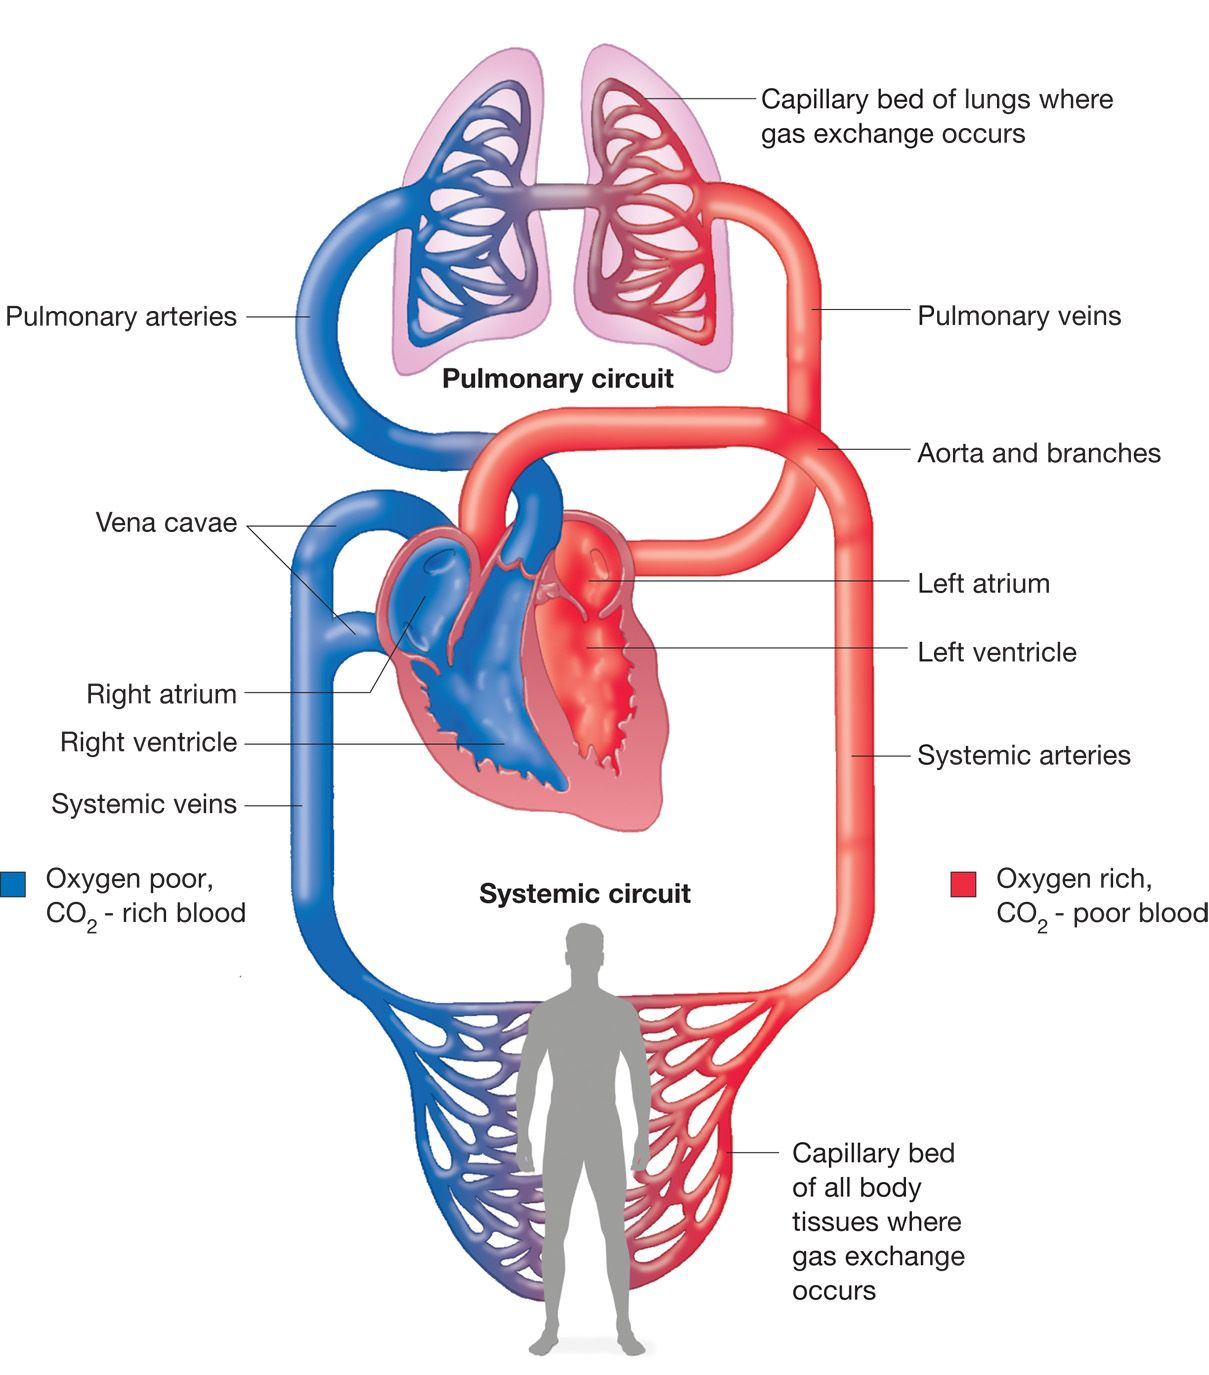 pin by erica howarth on cticu | pinterest | circulatory system